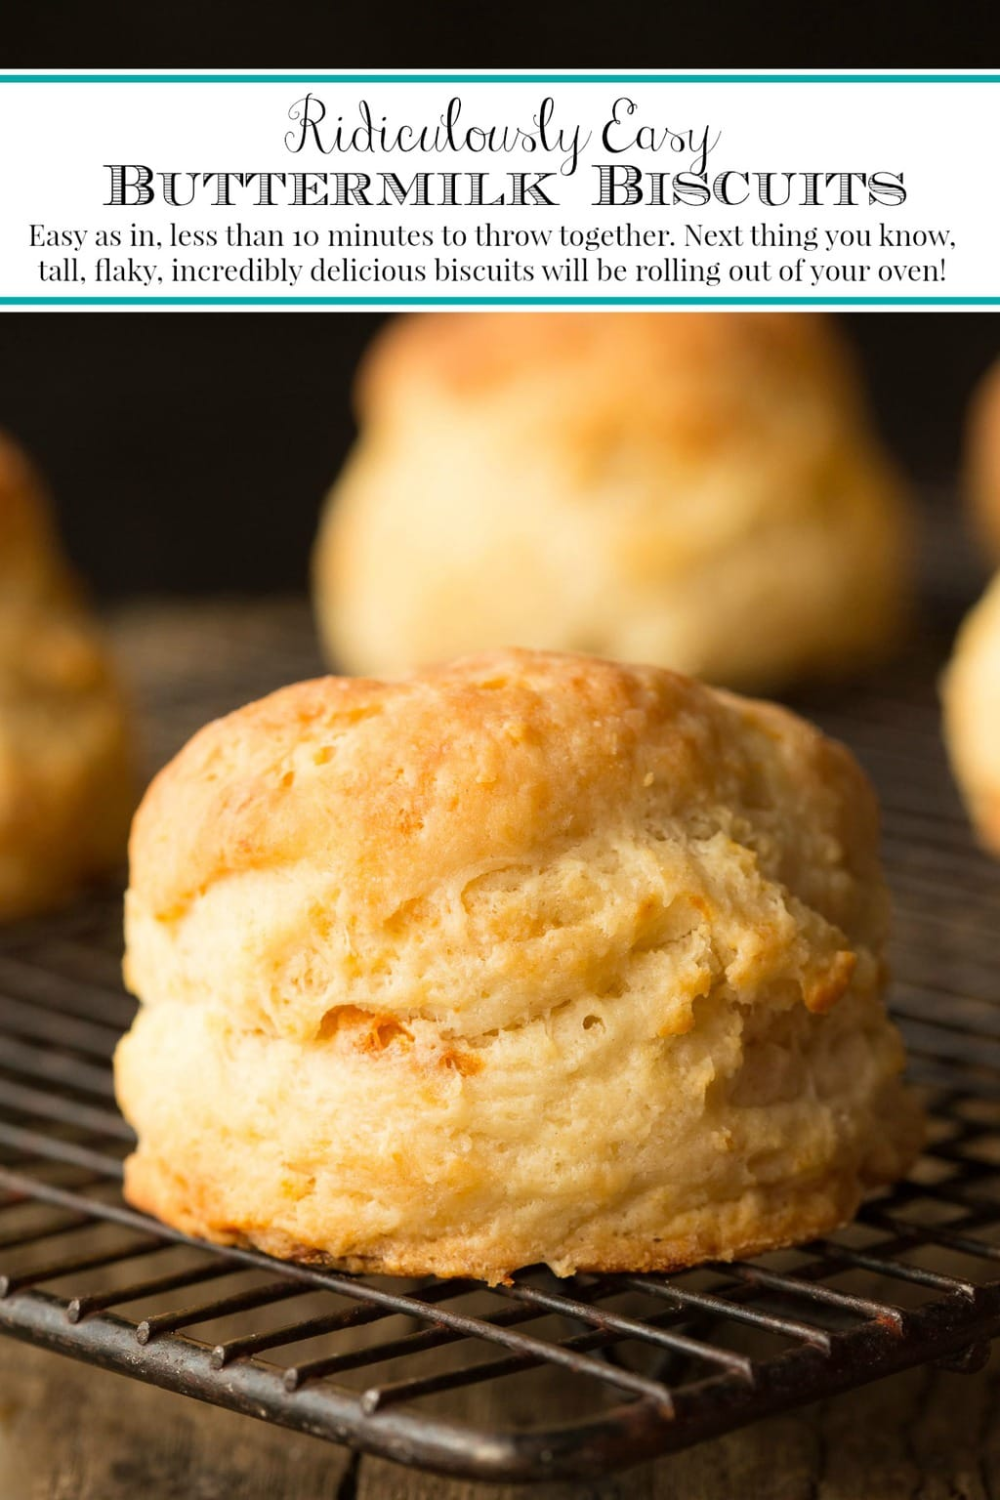 Ridiculously Easy Buttermilk Biscuits Recipe In 2020 Buttermilk Biscuits Easy Biscuit Recipe Biscuits Easy